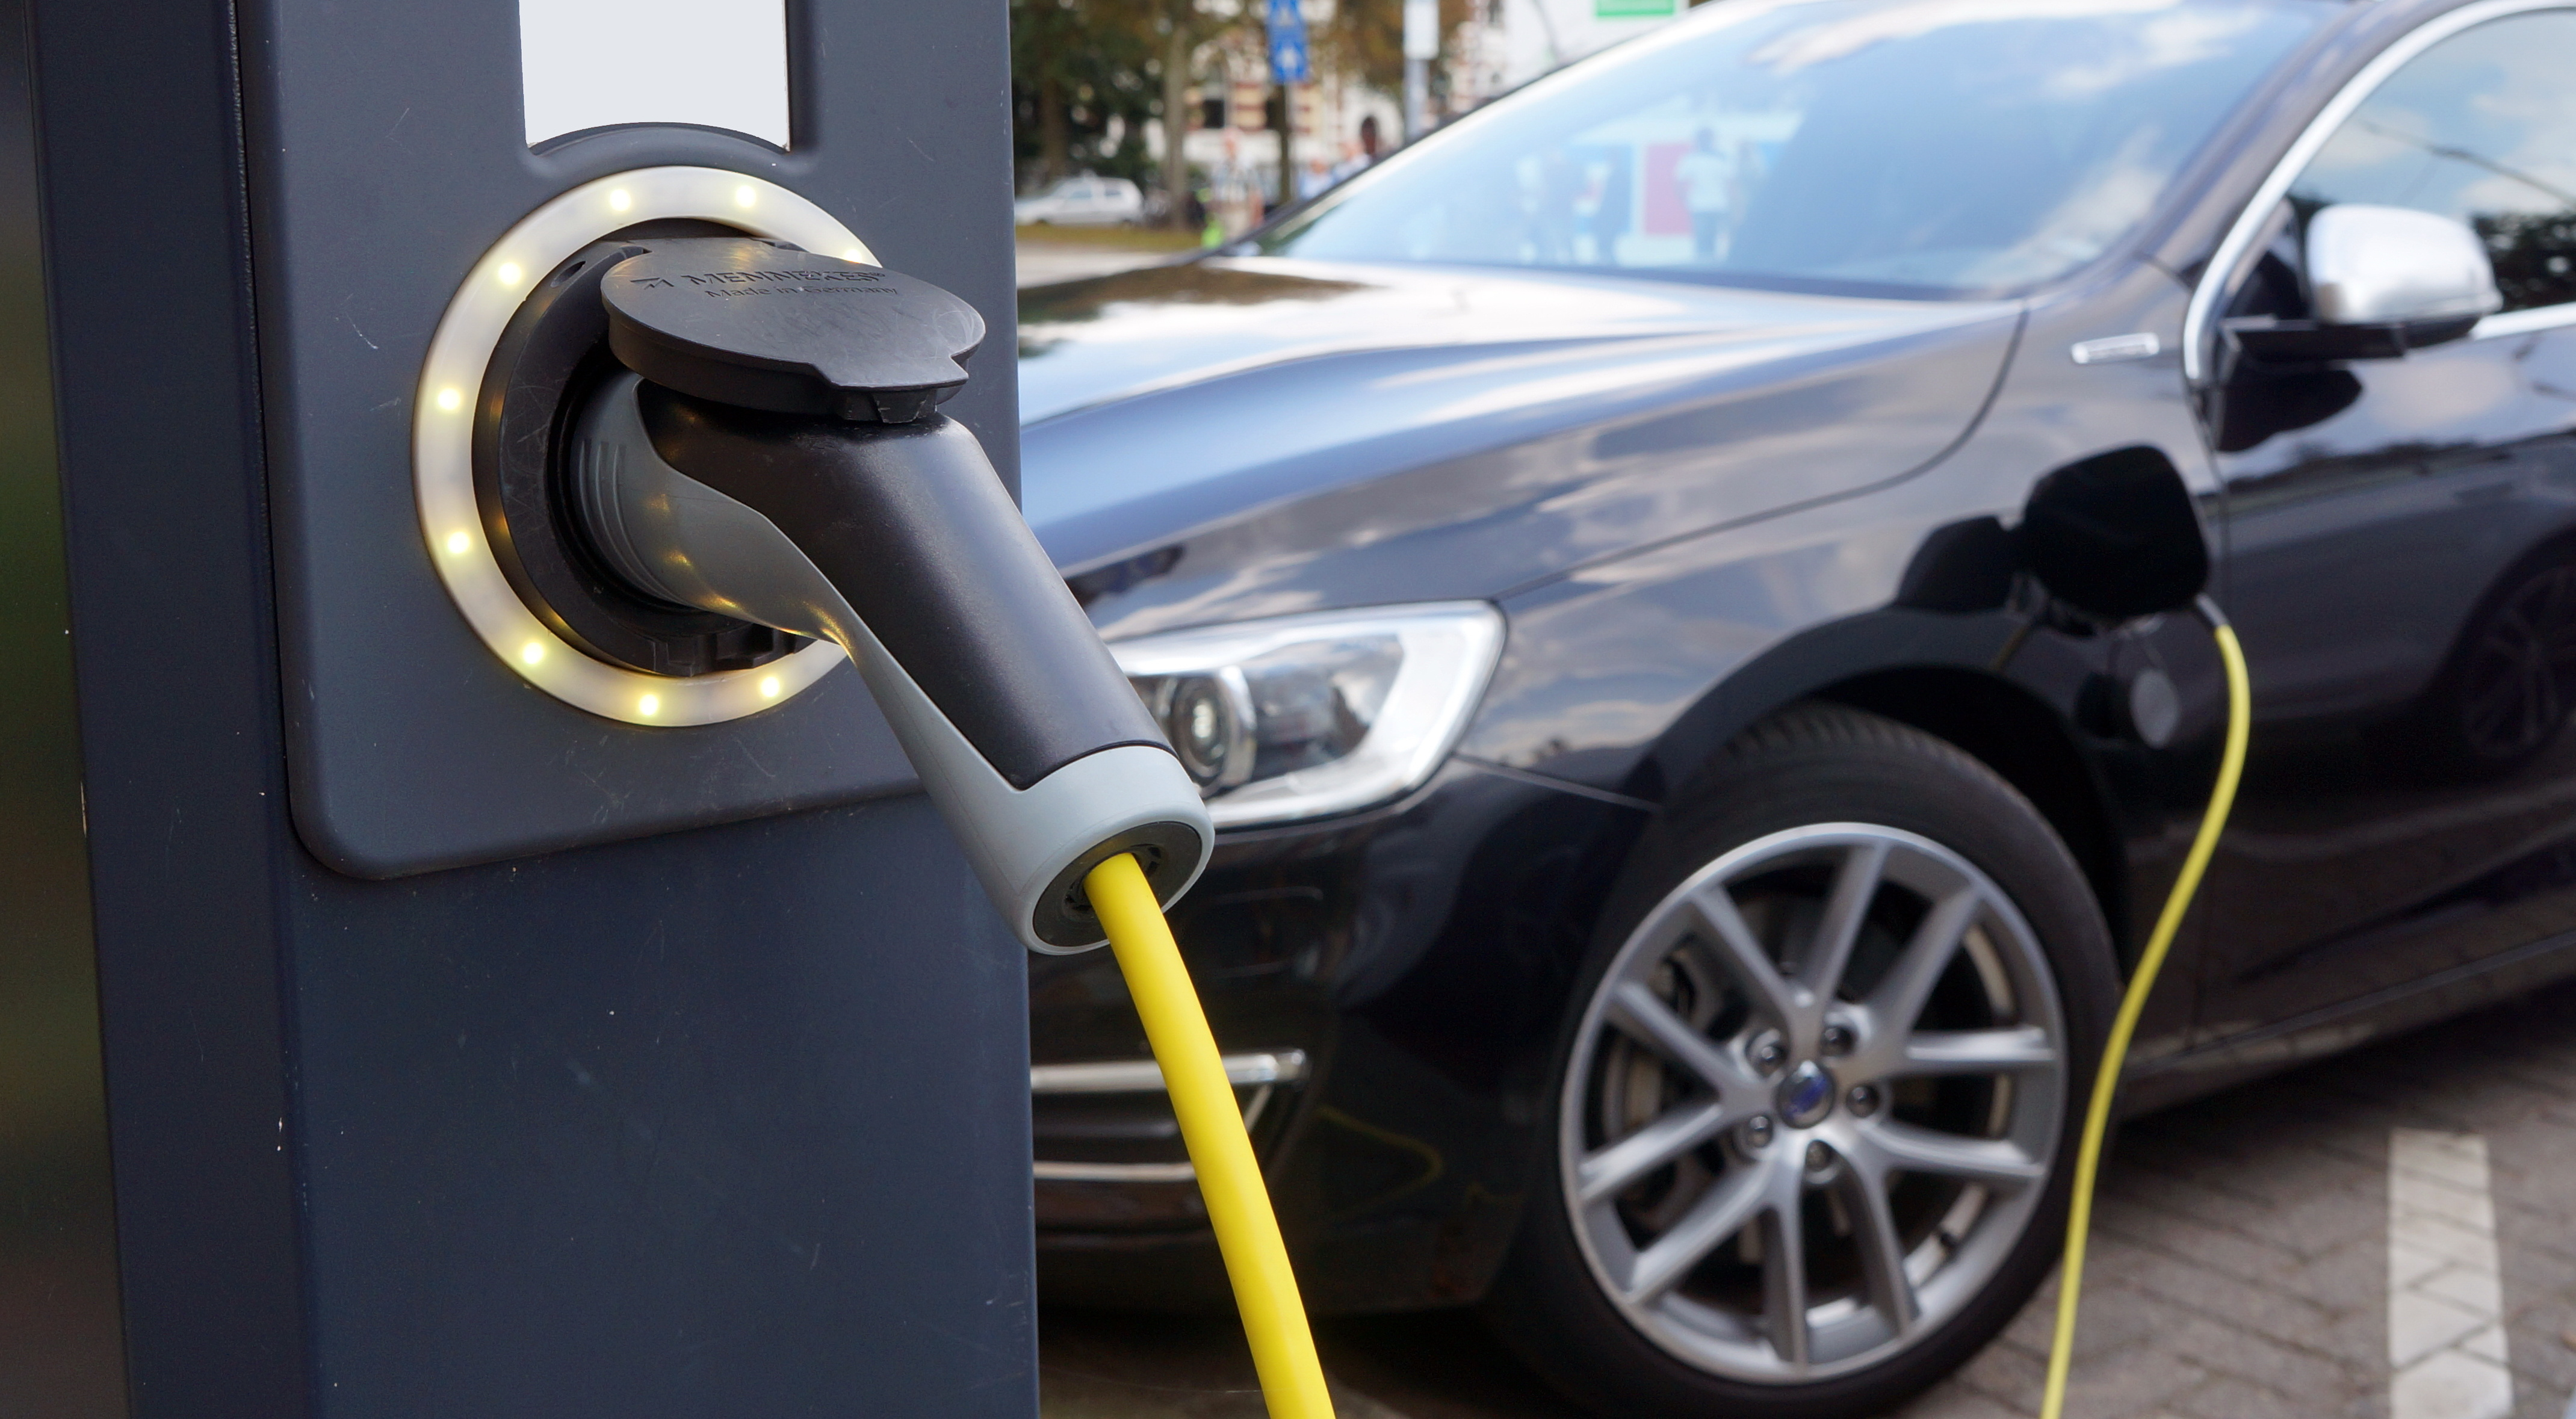 0% Benefit in Kind Tax for Electric Cars Changes from 2020/21